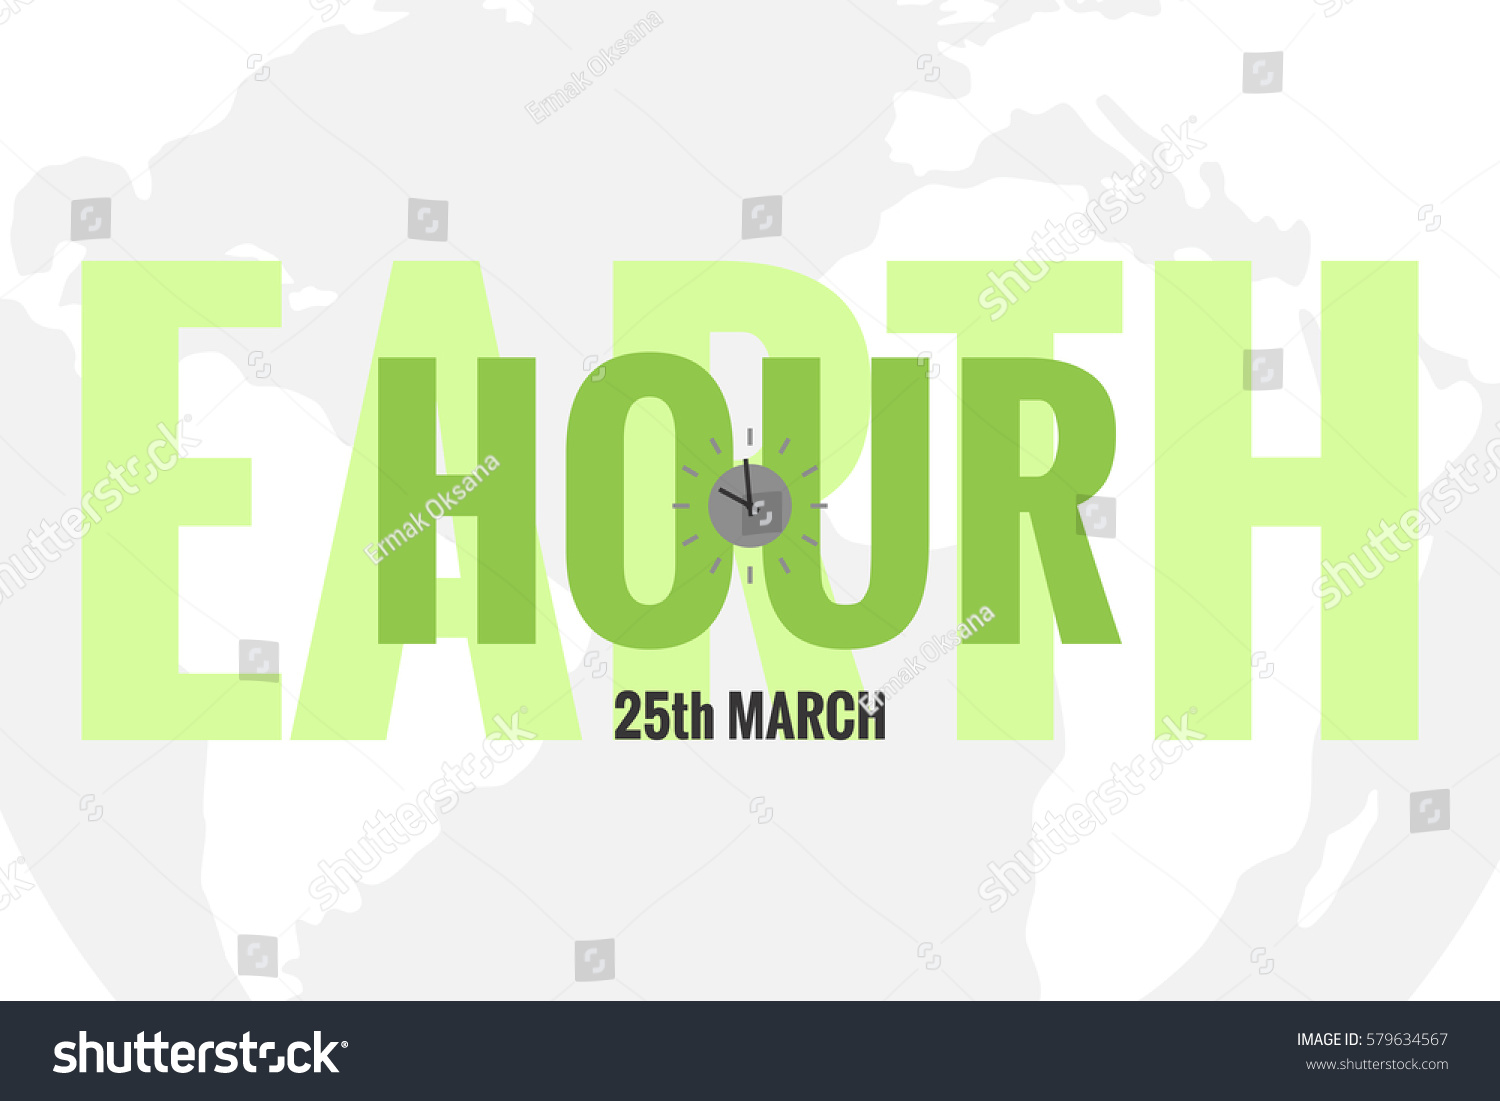 Vector template earth hour daylight saving stock vector 579634567 vector template of earth hour or daylight saving time with world map and clocks gumiabroncs Choice Image